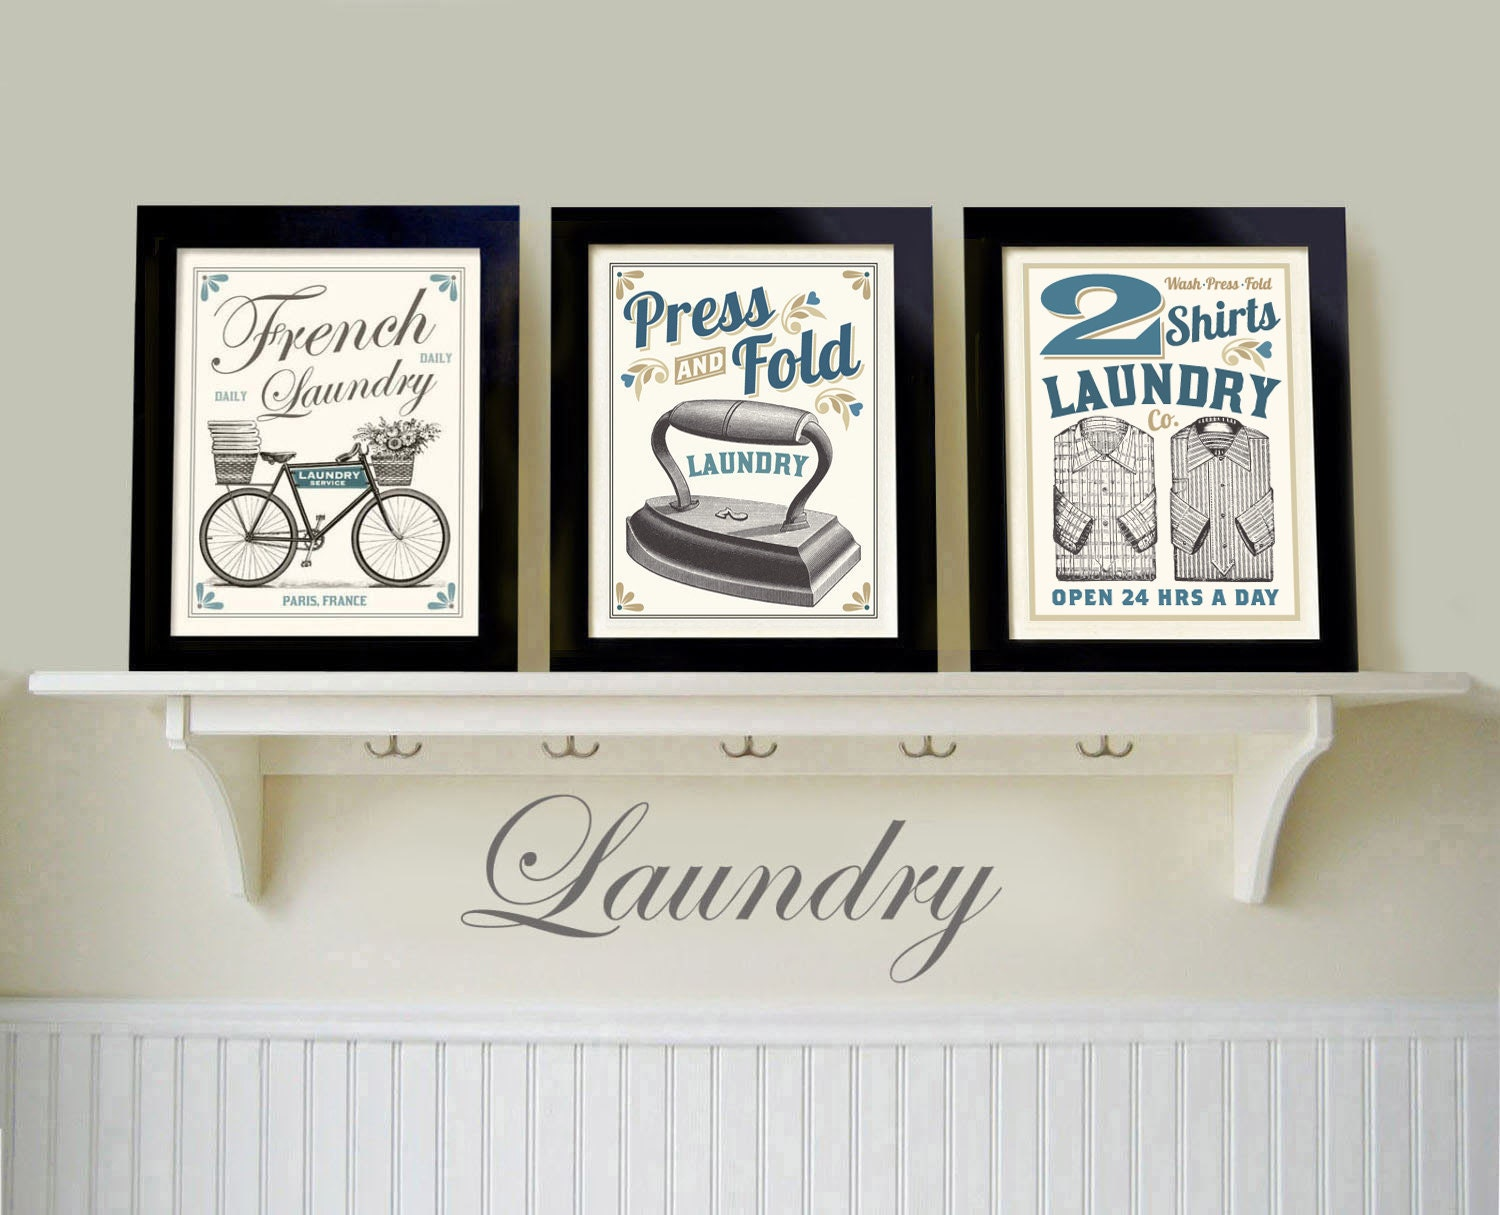 Laundry Room Pictures To Print Laundry Room Art Decor Vintage Black White Old Fashioned Print